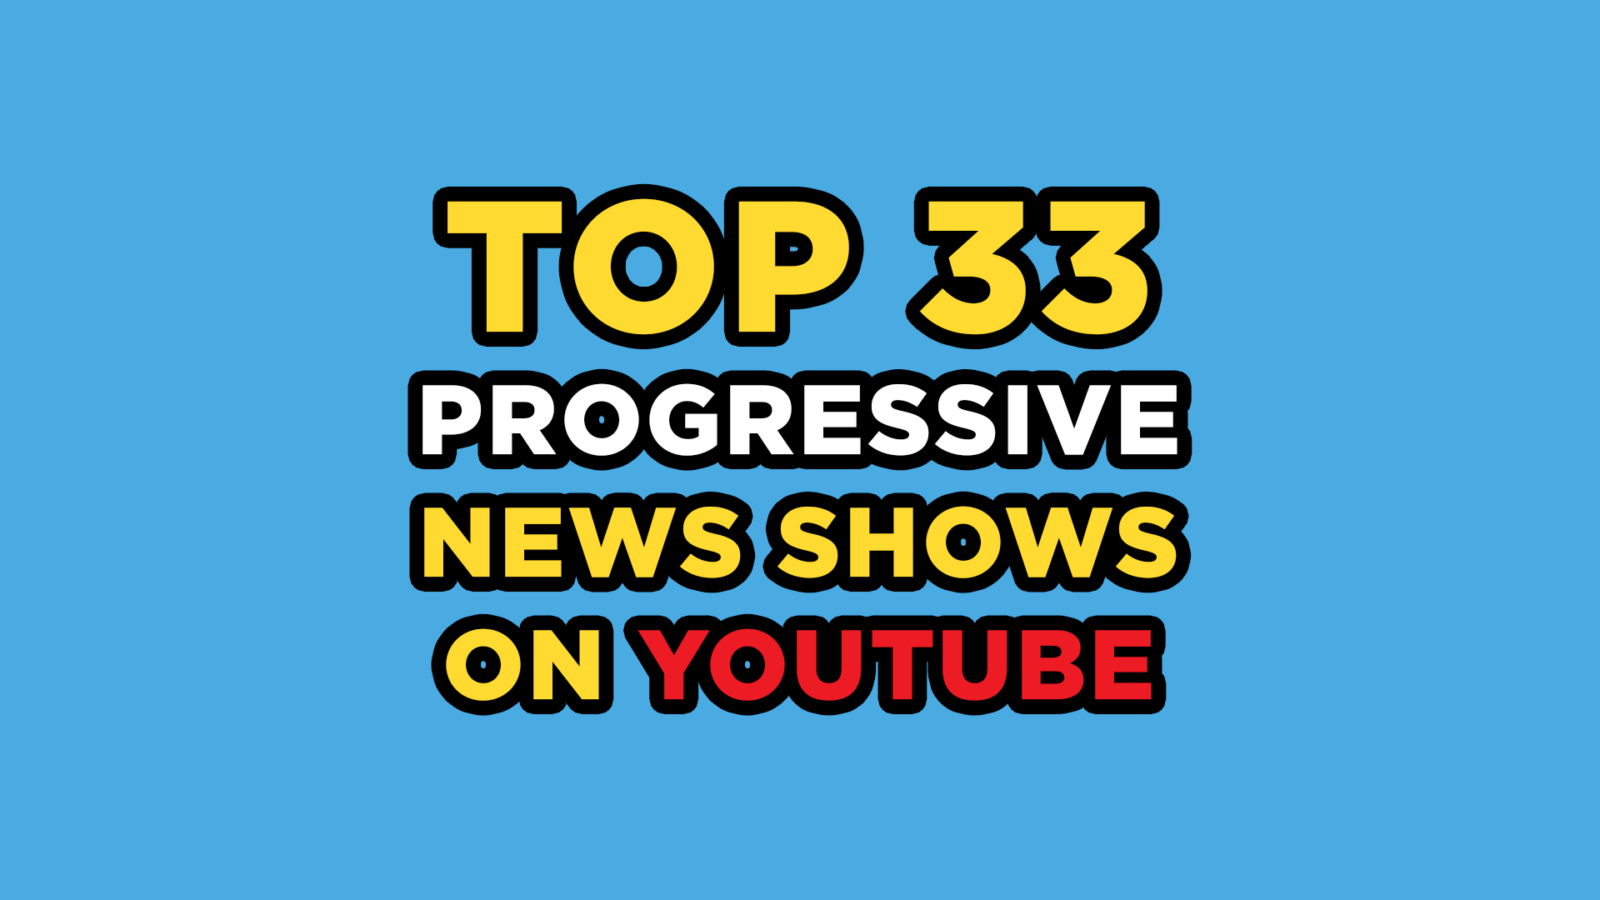 Top 33 Progressive News Shows on YouTube [2020 Edition]